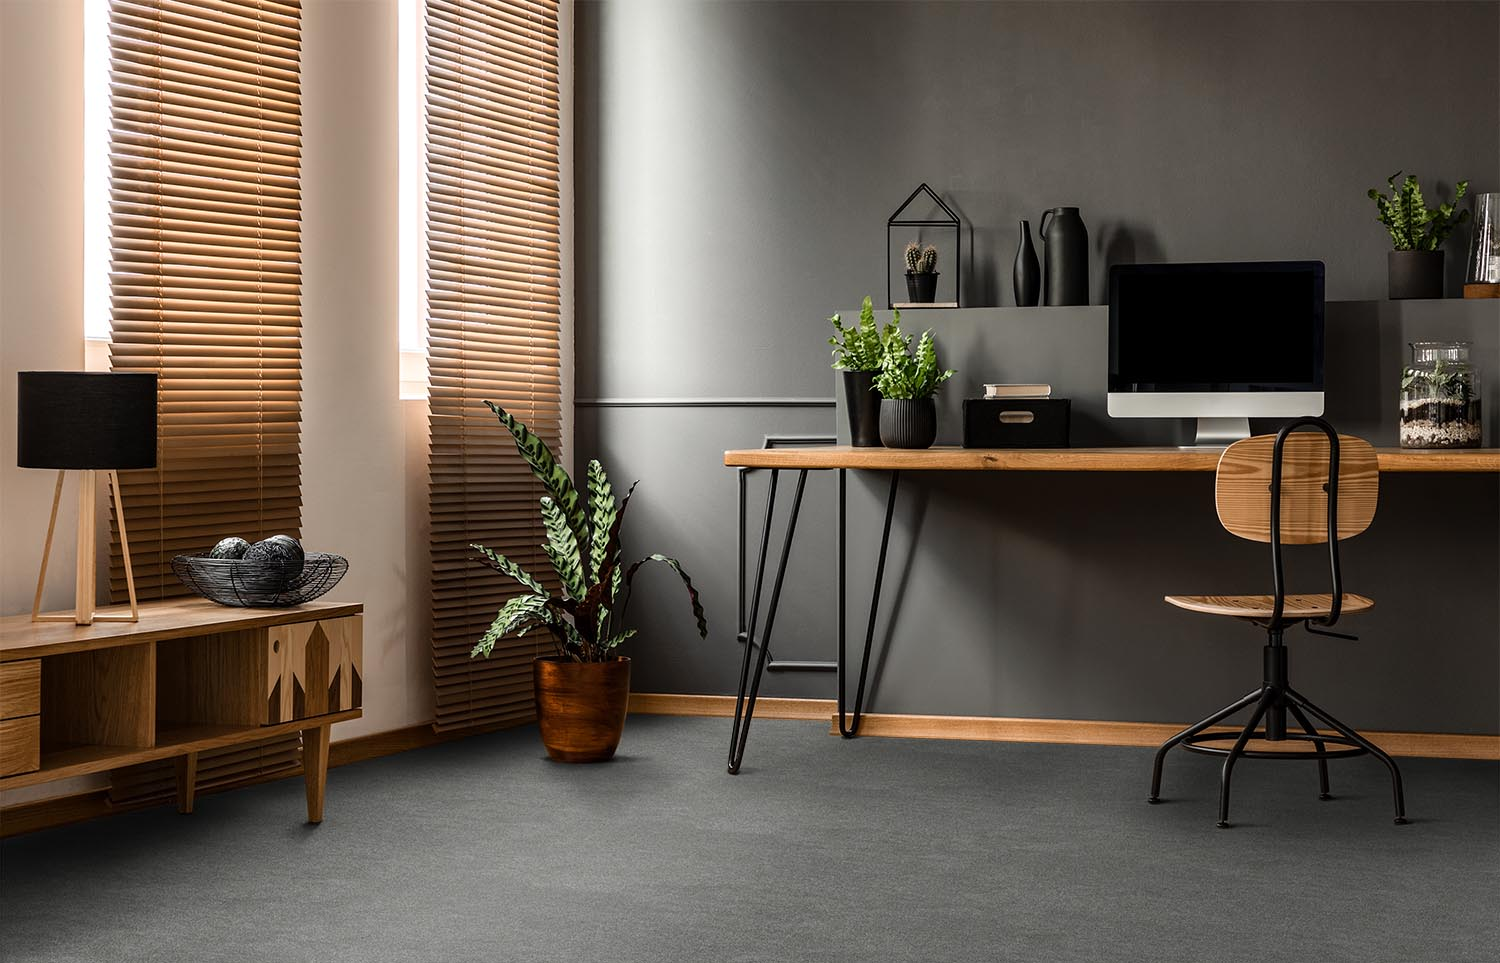 Softology - S201 - Brunia home office